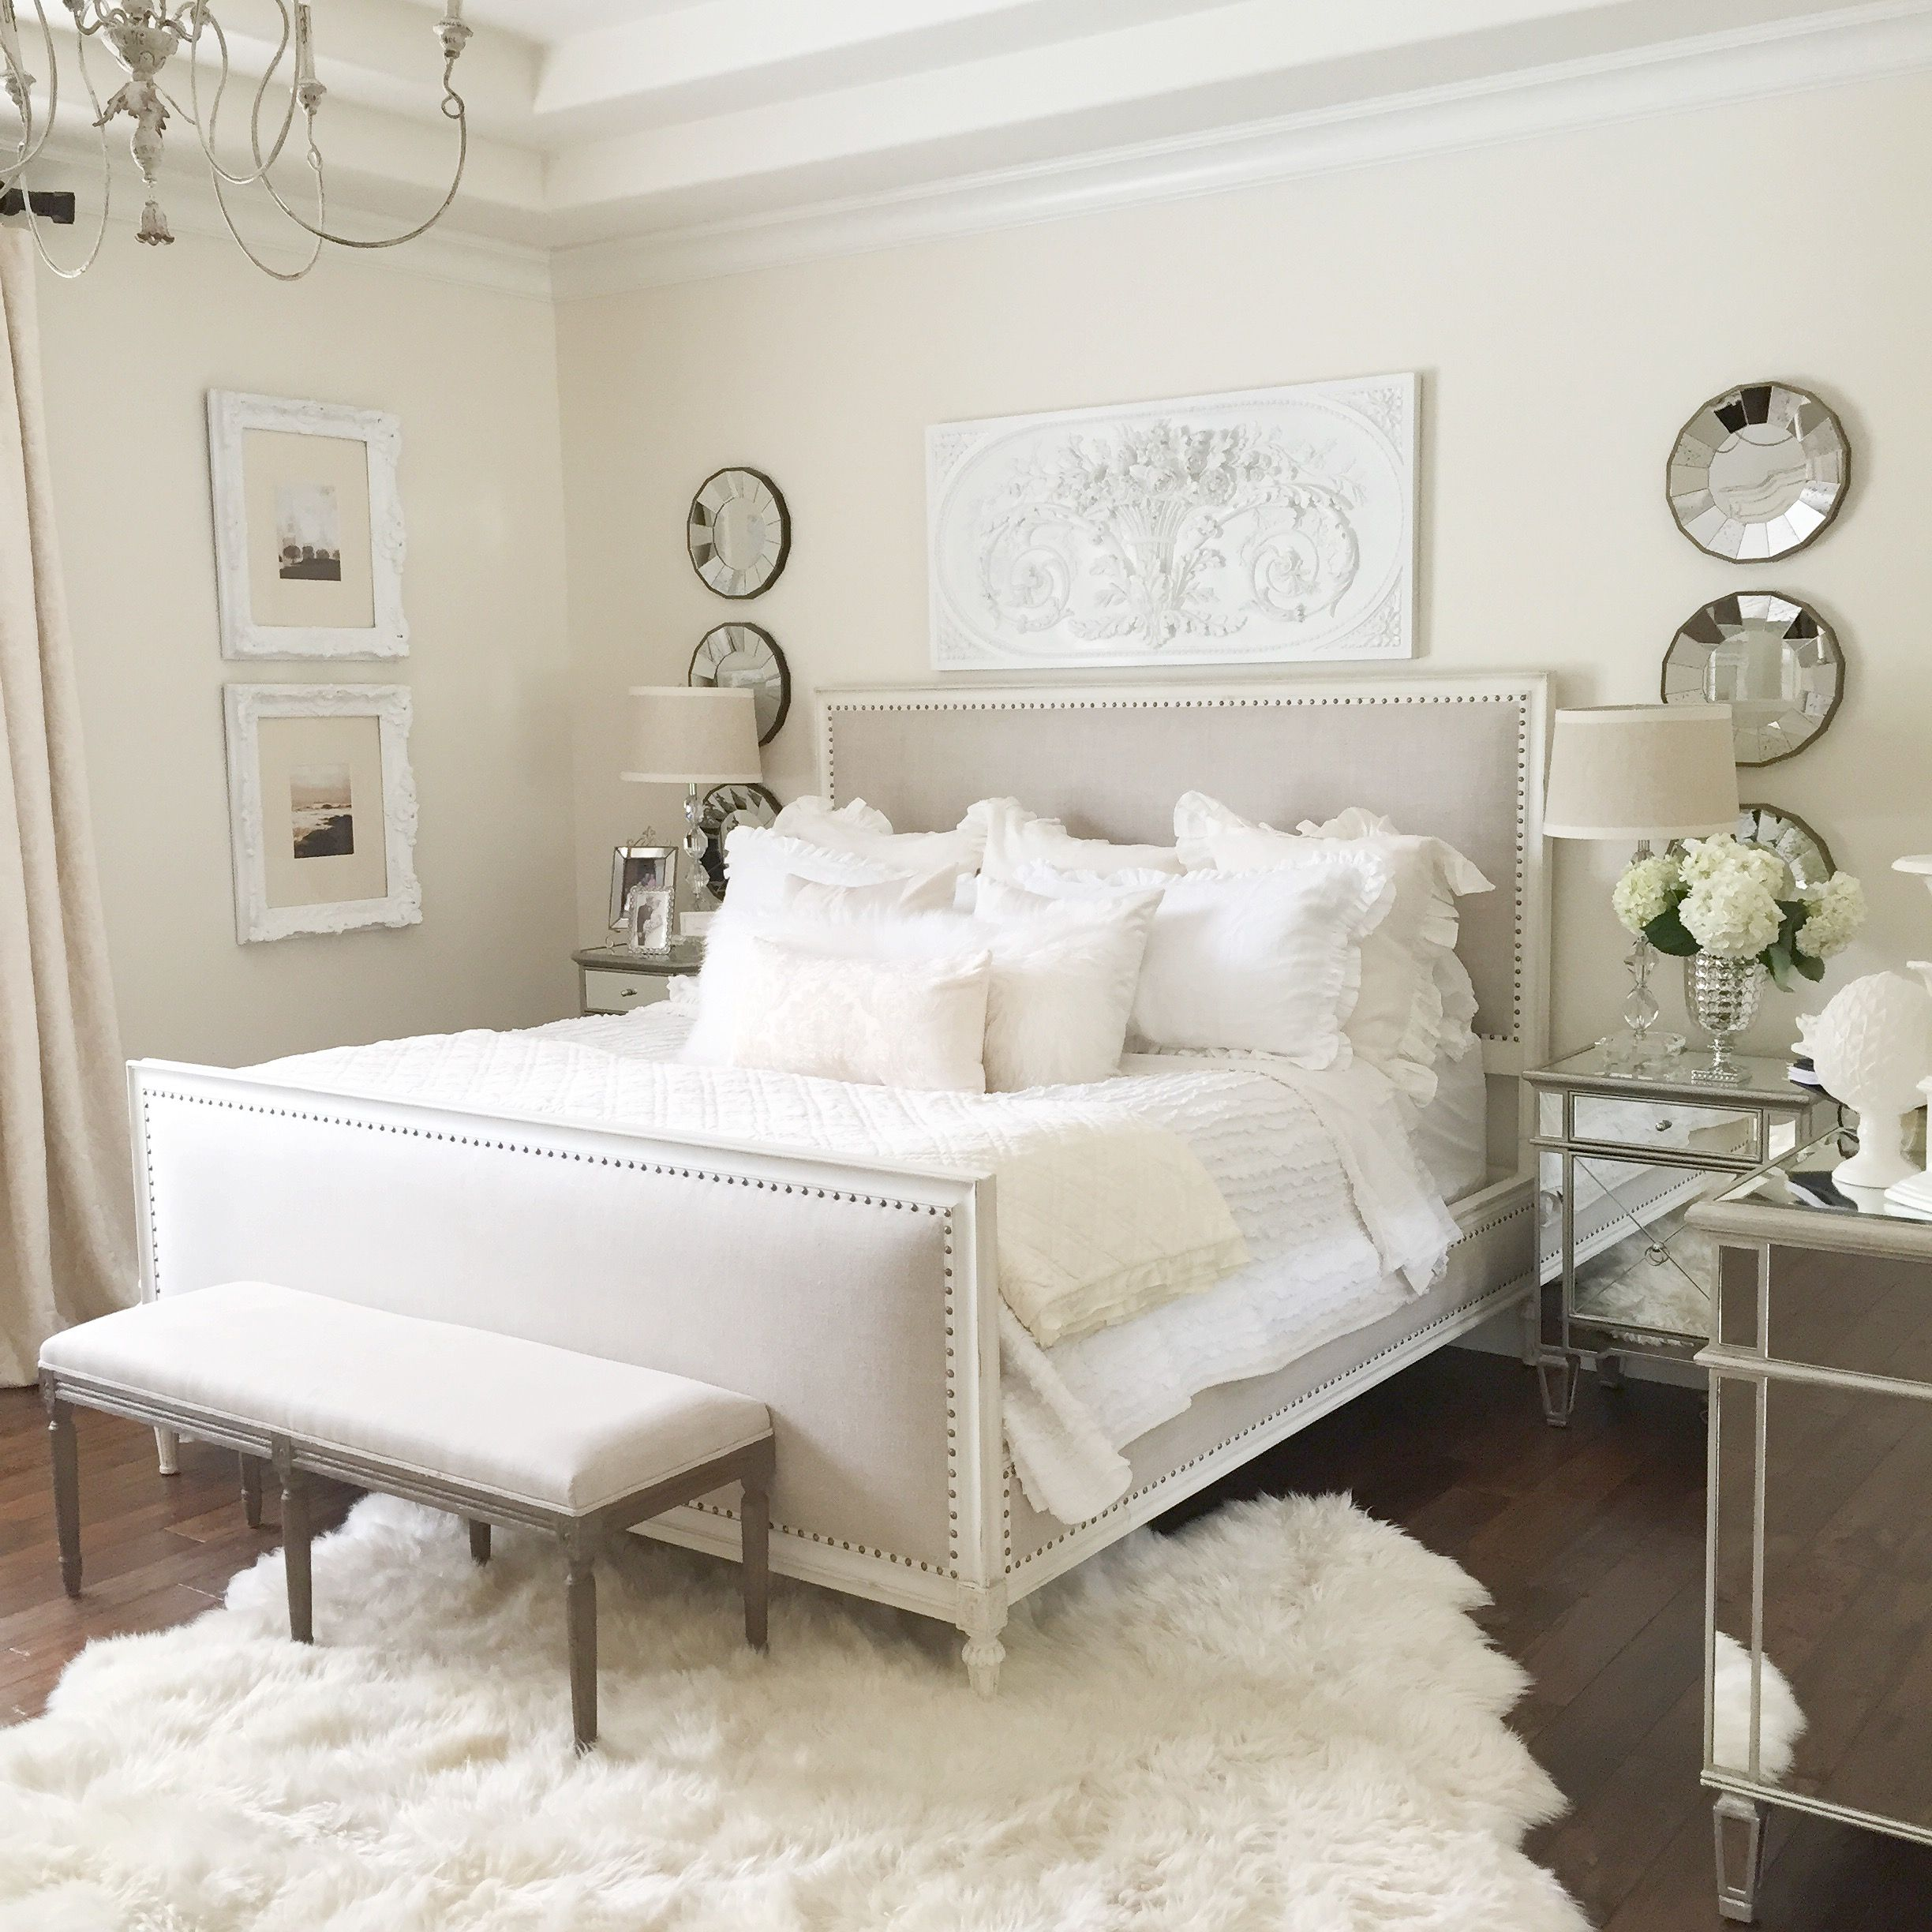 Restoration hardware bedroom - Neutral Easy Master Bedroom With Restoration Hardware Bed White Wall Mirrored Furniture Fur